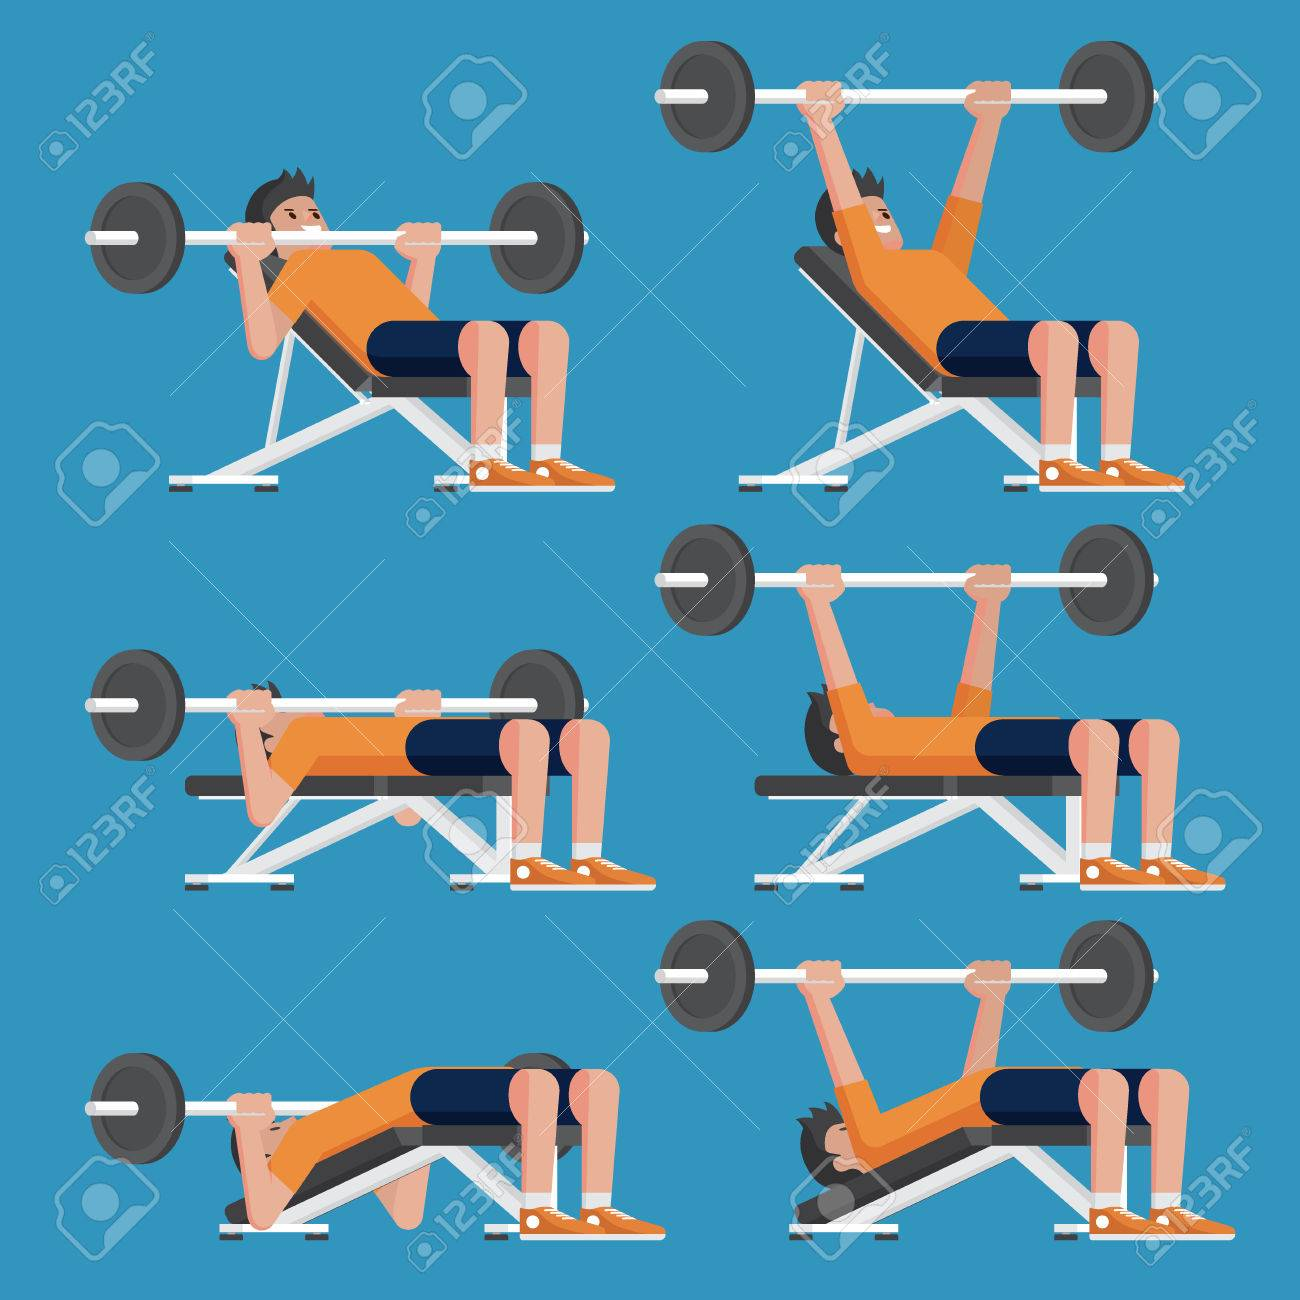 Set Of Man In Weight Training Chest Workout Poses Incline Decline Royalty Free Cliparts Vectors And Stock Illustration Image 82612451